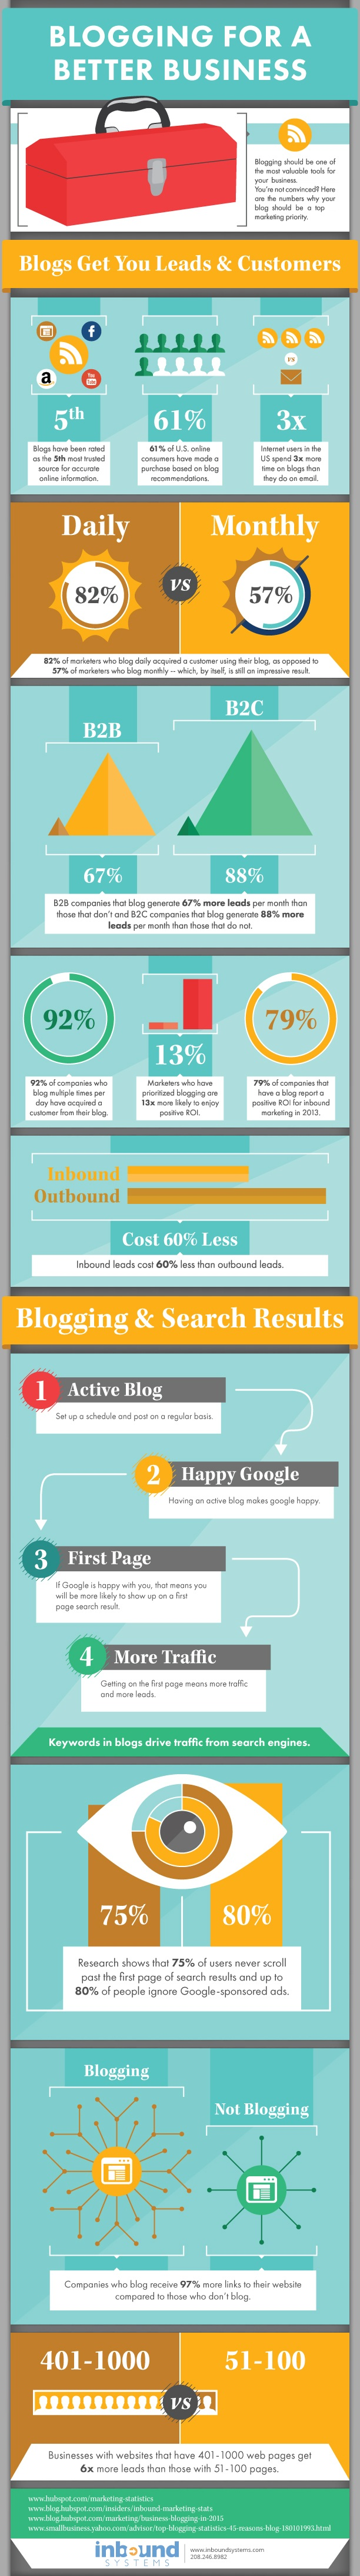 15 Important Stats About Blogging and Content Marketing [Infographic]